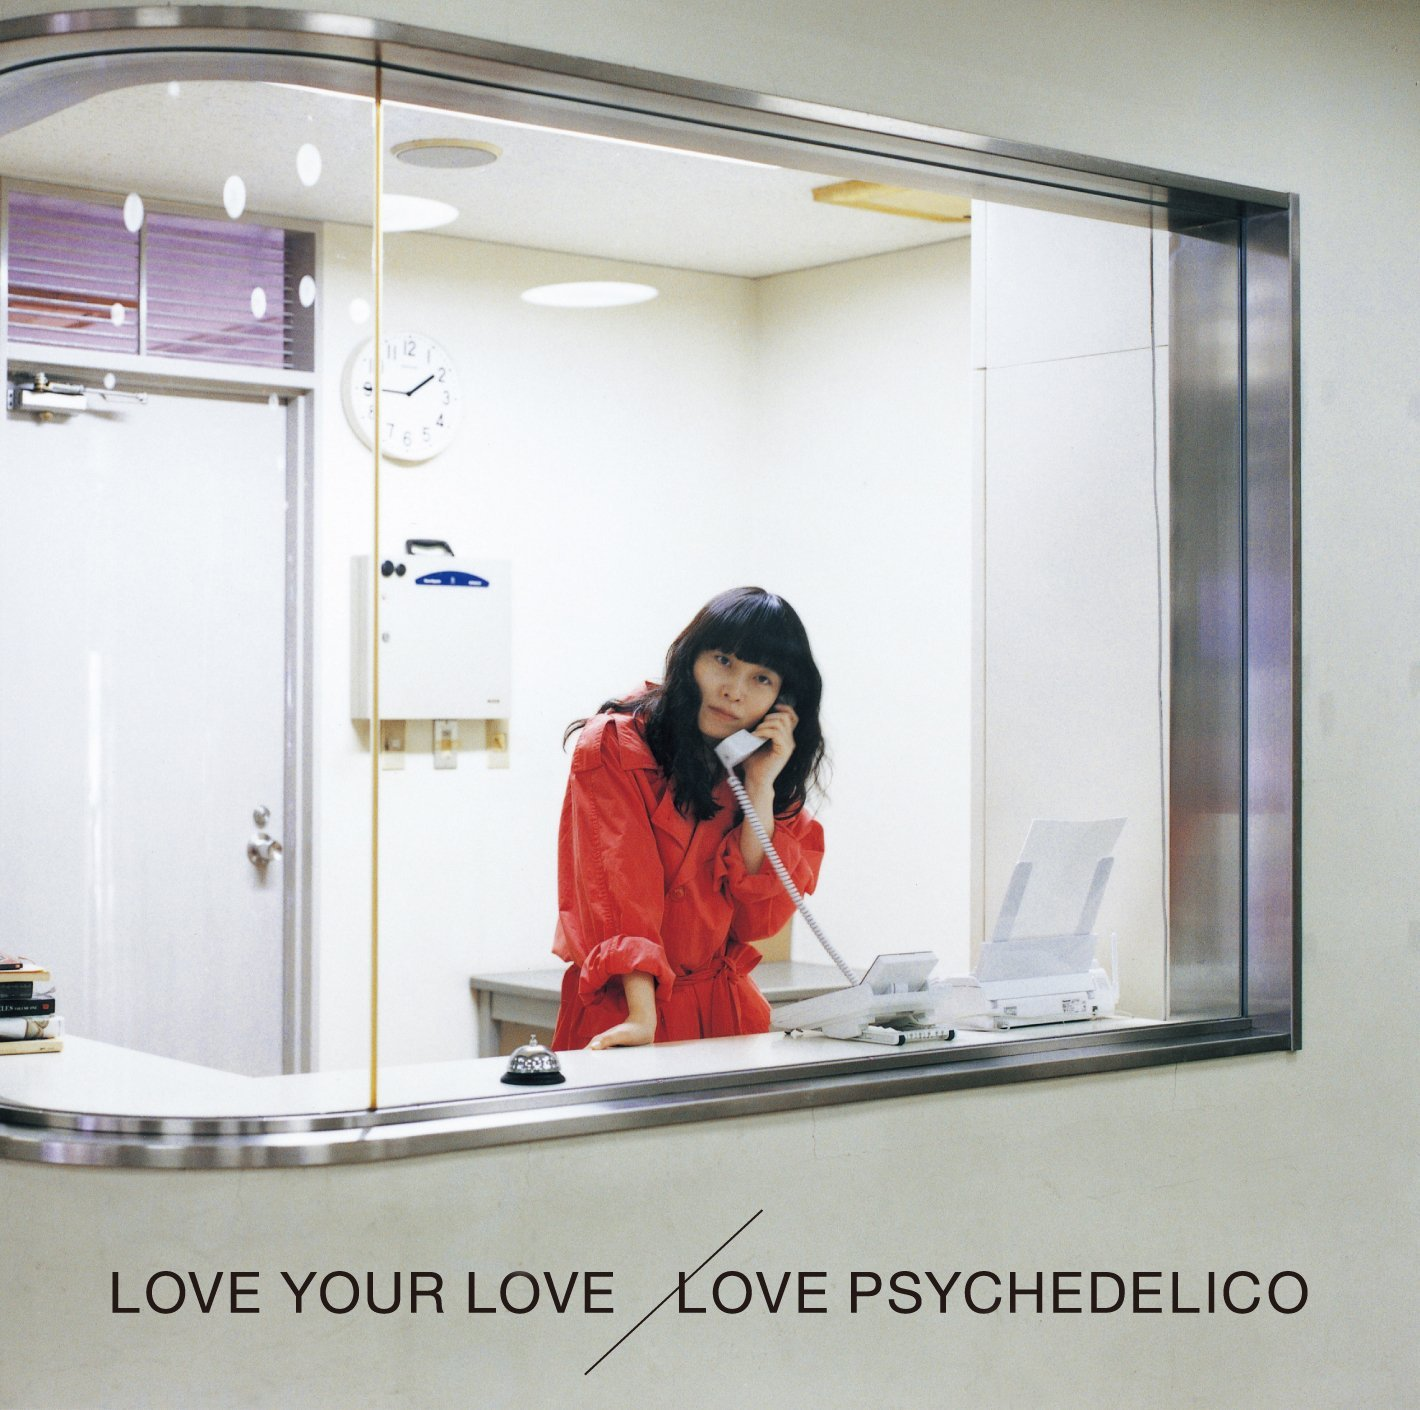 "LOVE PSYCHEDELICO 結成20周年アルバム""LOVE YOUR LIFE"" デリコはさらに進化中"